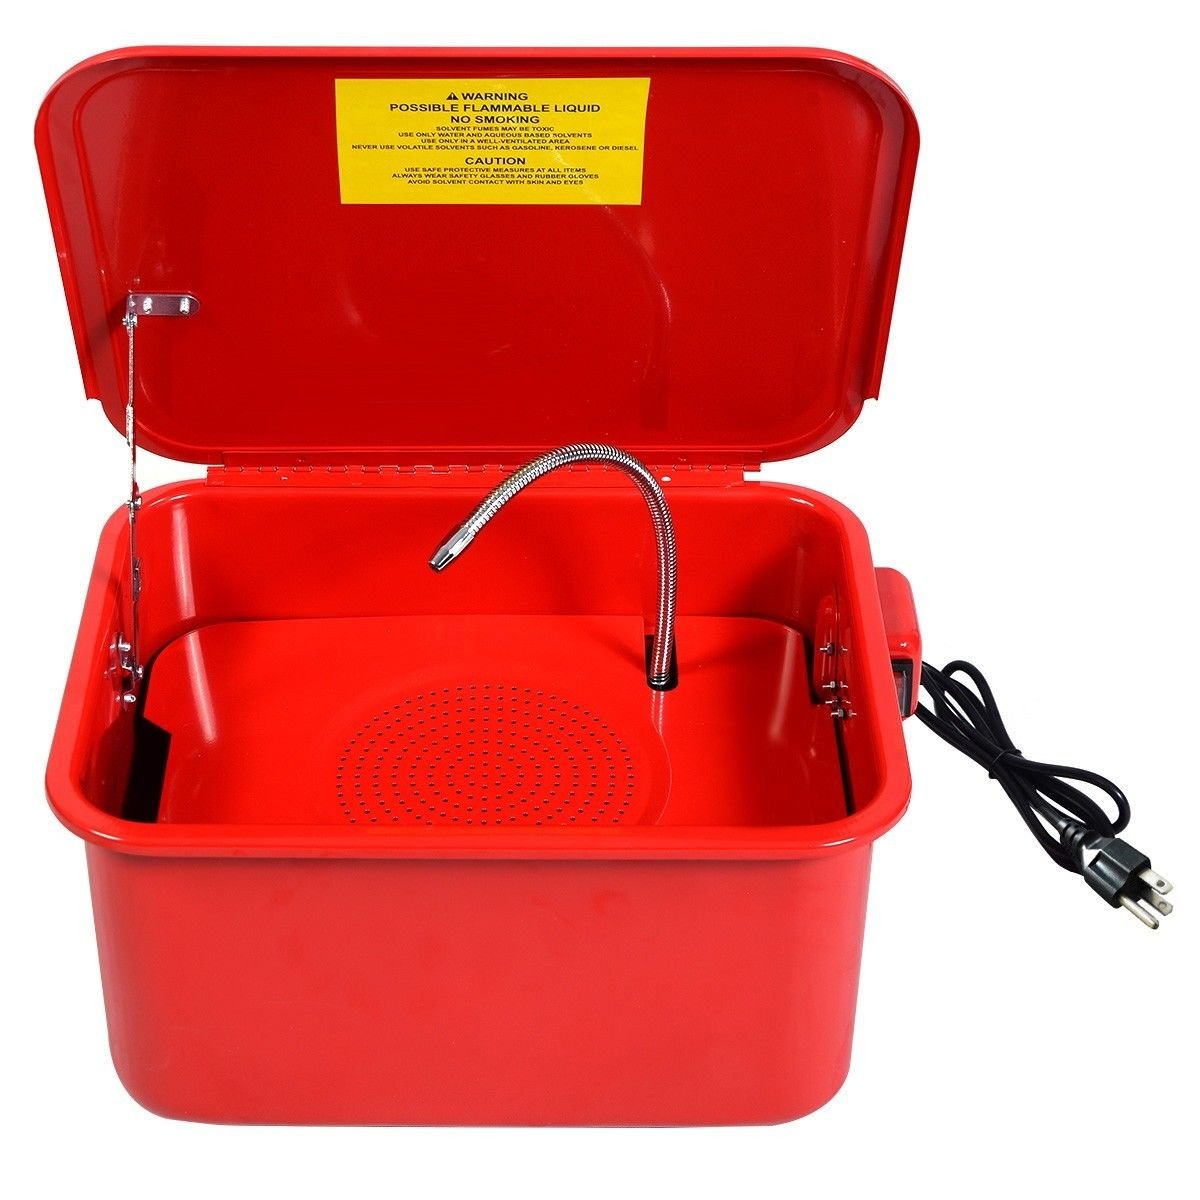 RECIRCULATING PARTS WASHER 3.5 GALLON CAPACITY 15x12.5 WORK AREA SOLVENT CLEANER